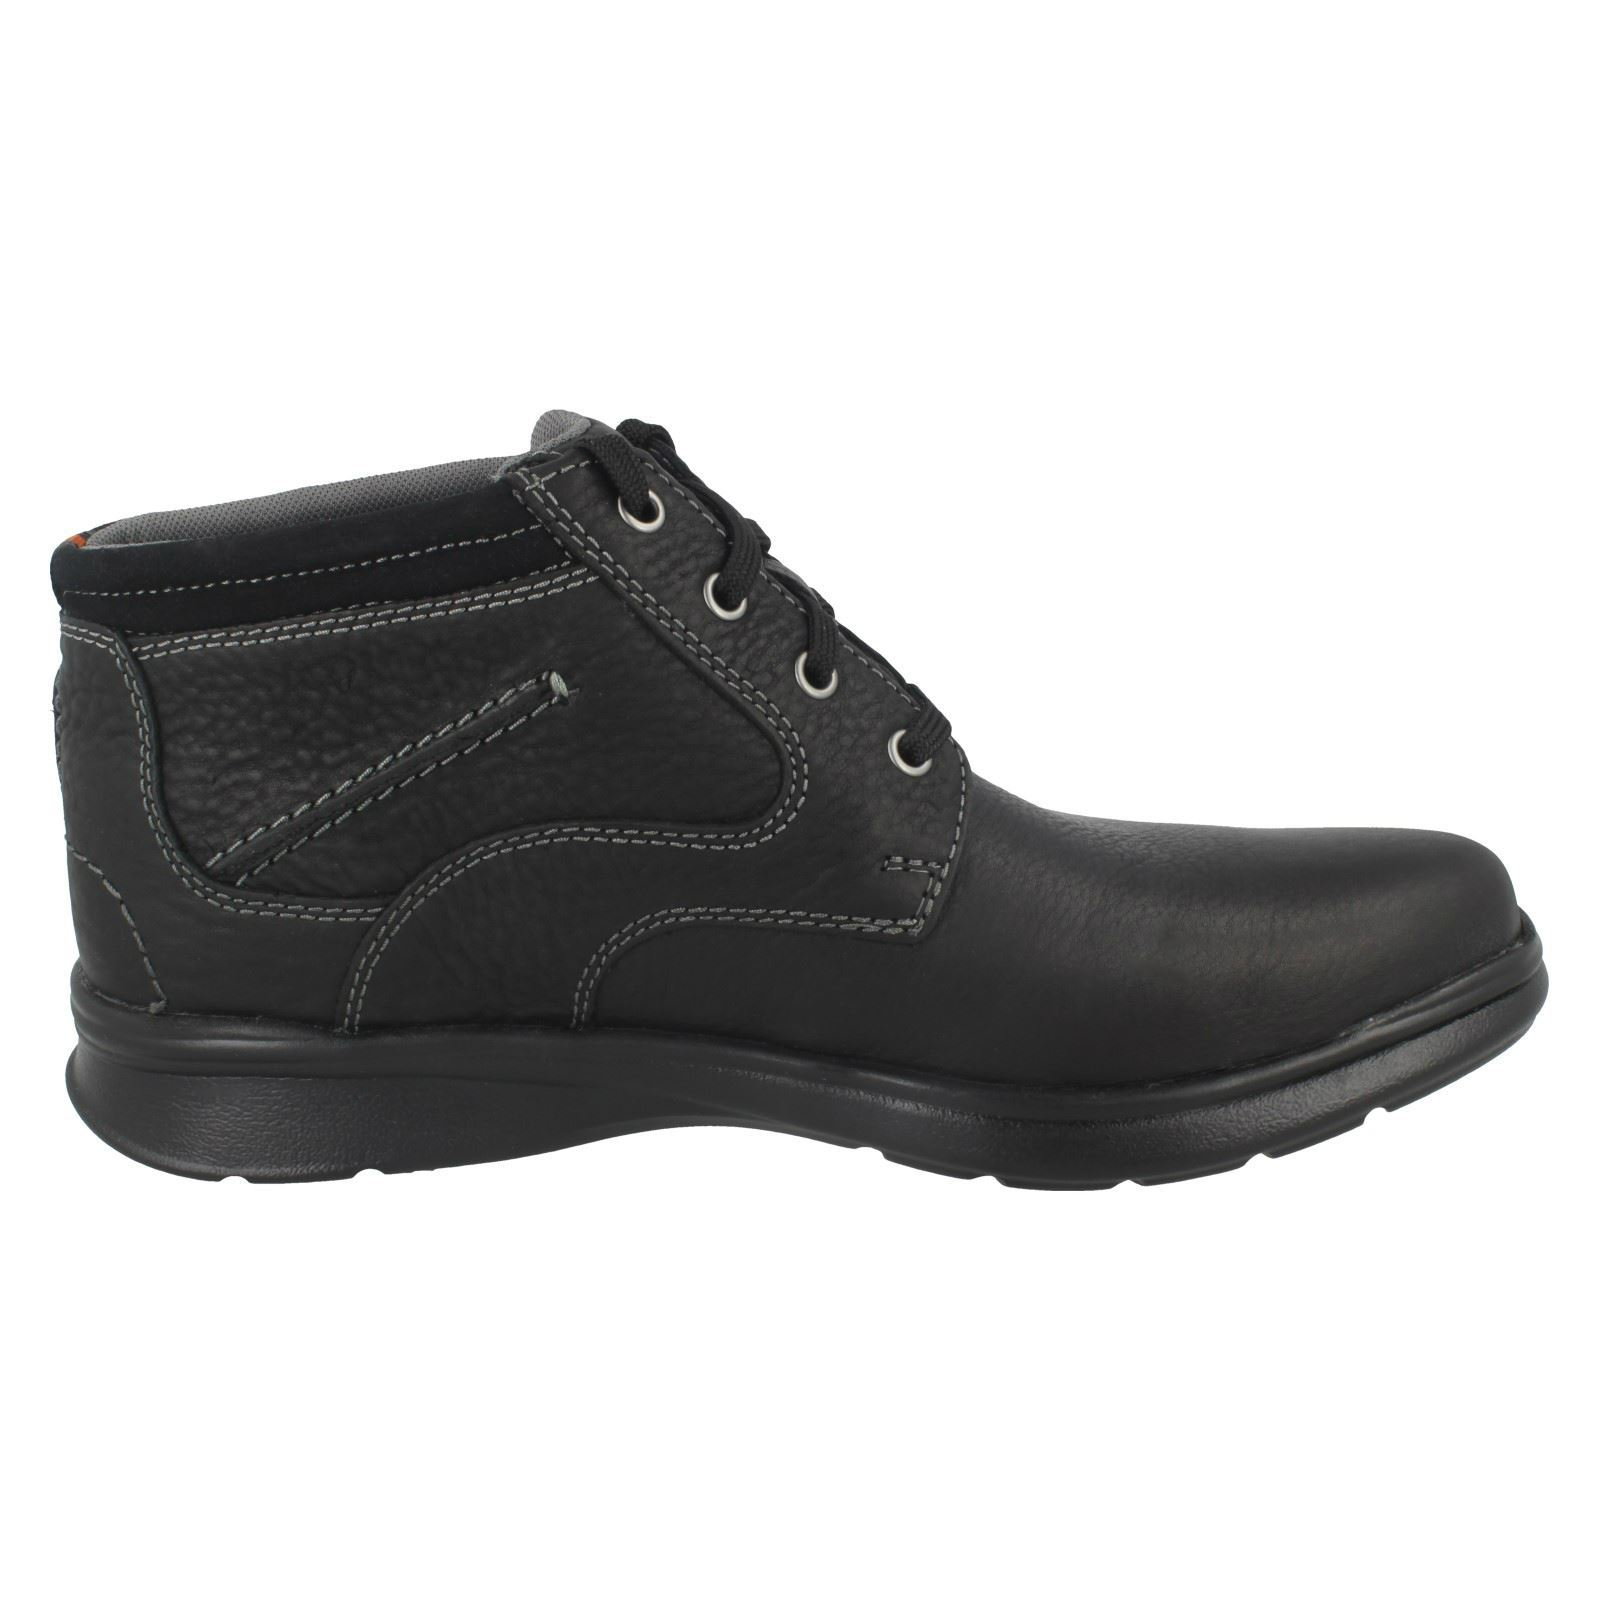 Mens-Clarks-Cotrell-Rise-Casual-Lace-Up-Ankle-Boots thumbnail 7